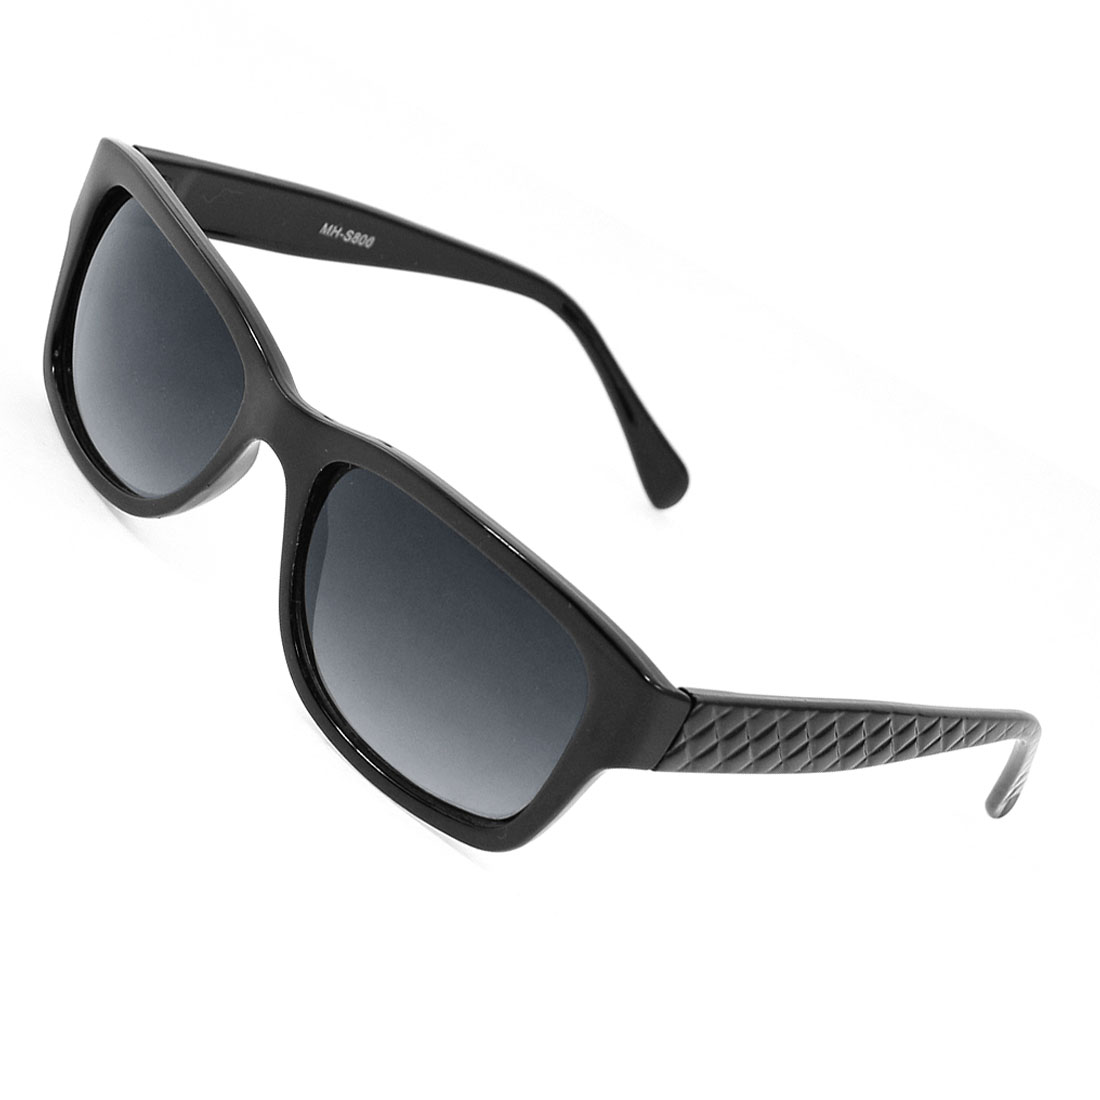 Black Lens Textured Plastic Arms Full Frame Sunglasses for Women